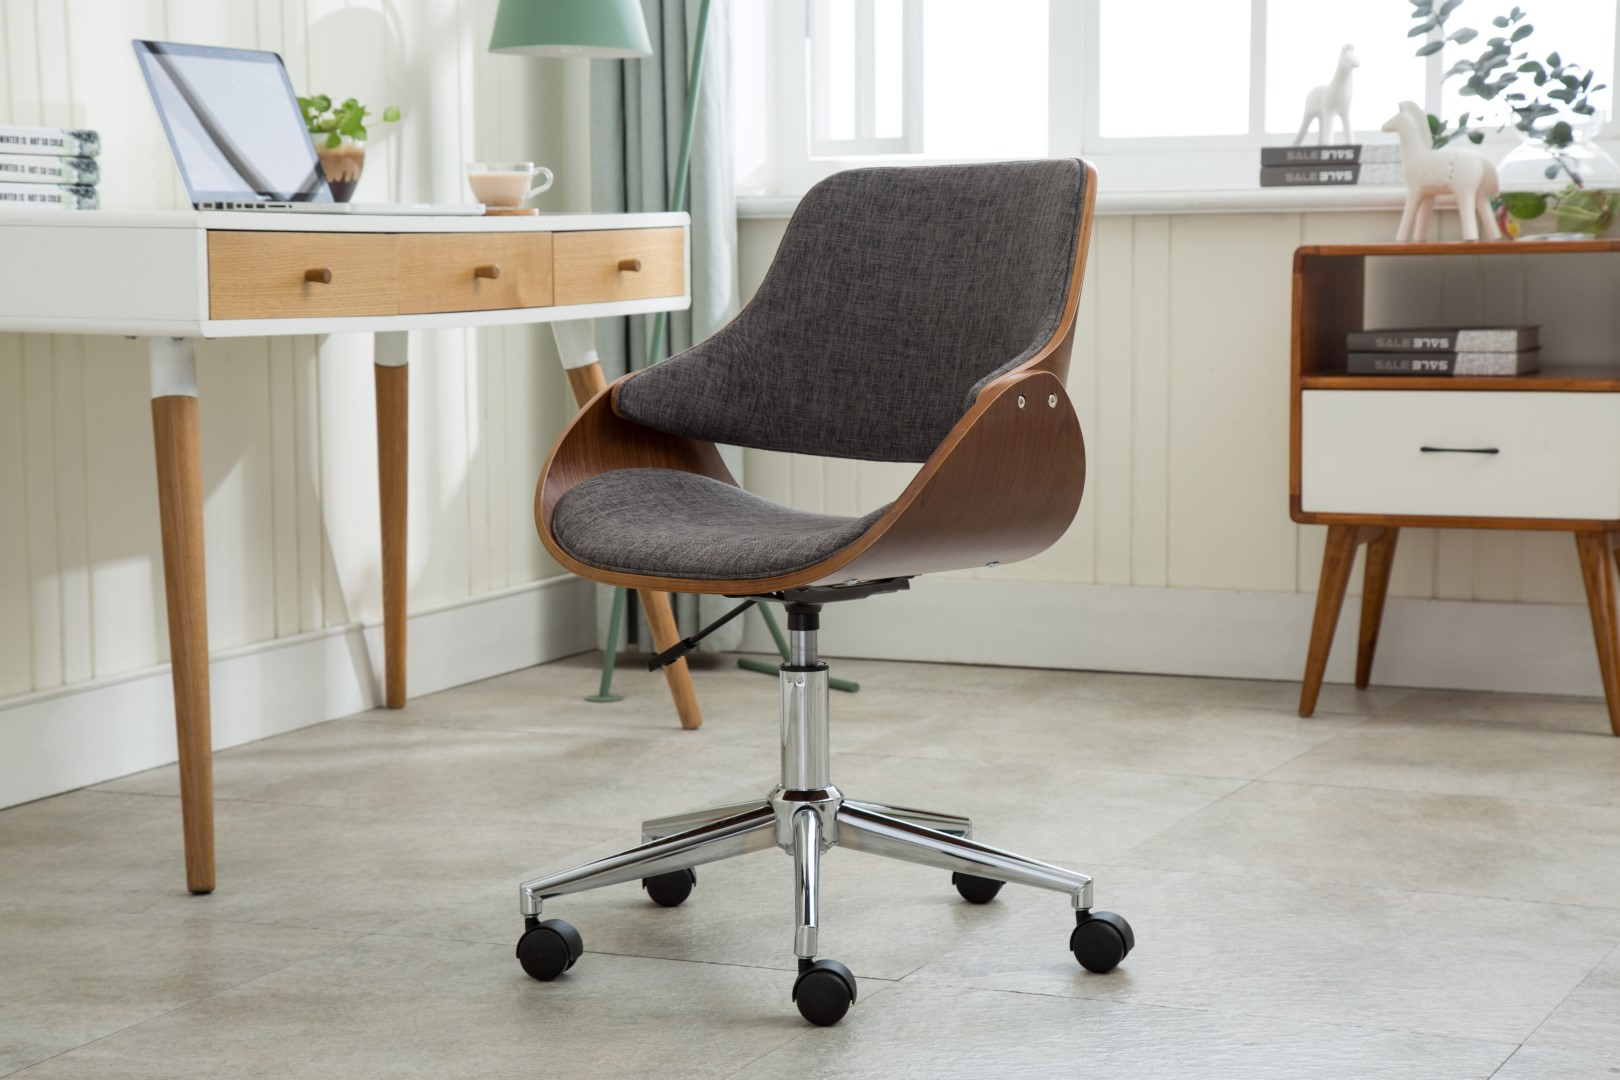 desk chairs on wheels flex lite chair porthos home adjustable height mid century modern office fabric and wood with caster easy assembly walmart com